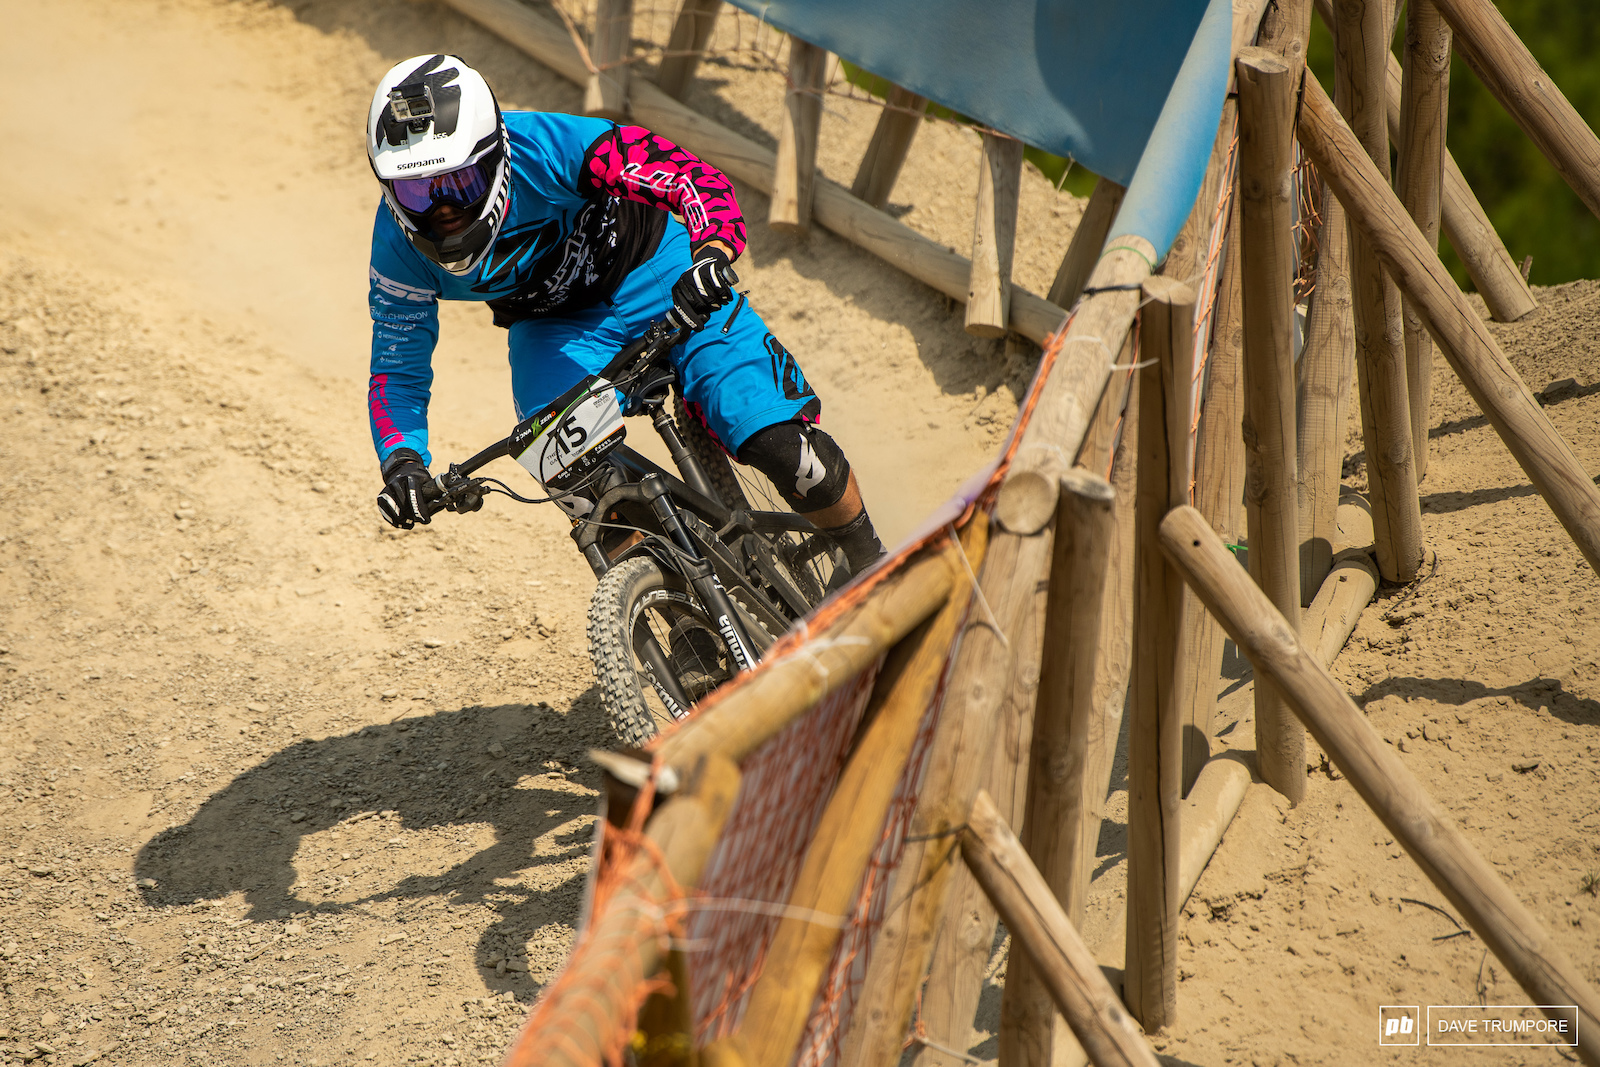 Luckily this fence stands between Theo Galy and a 50 meter cliff should anything go wrong around this high speed corner.